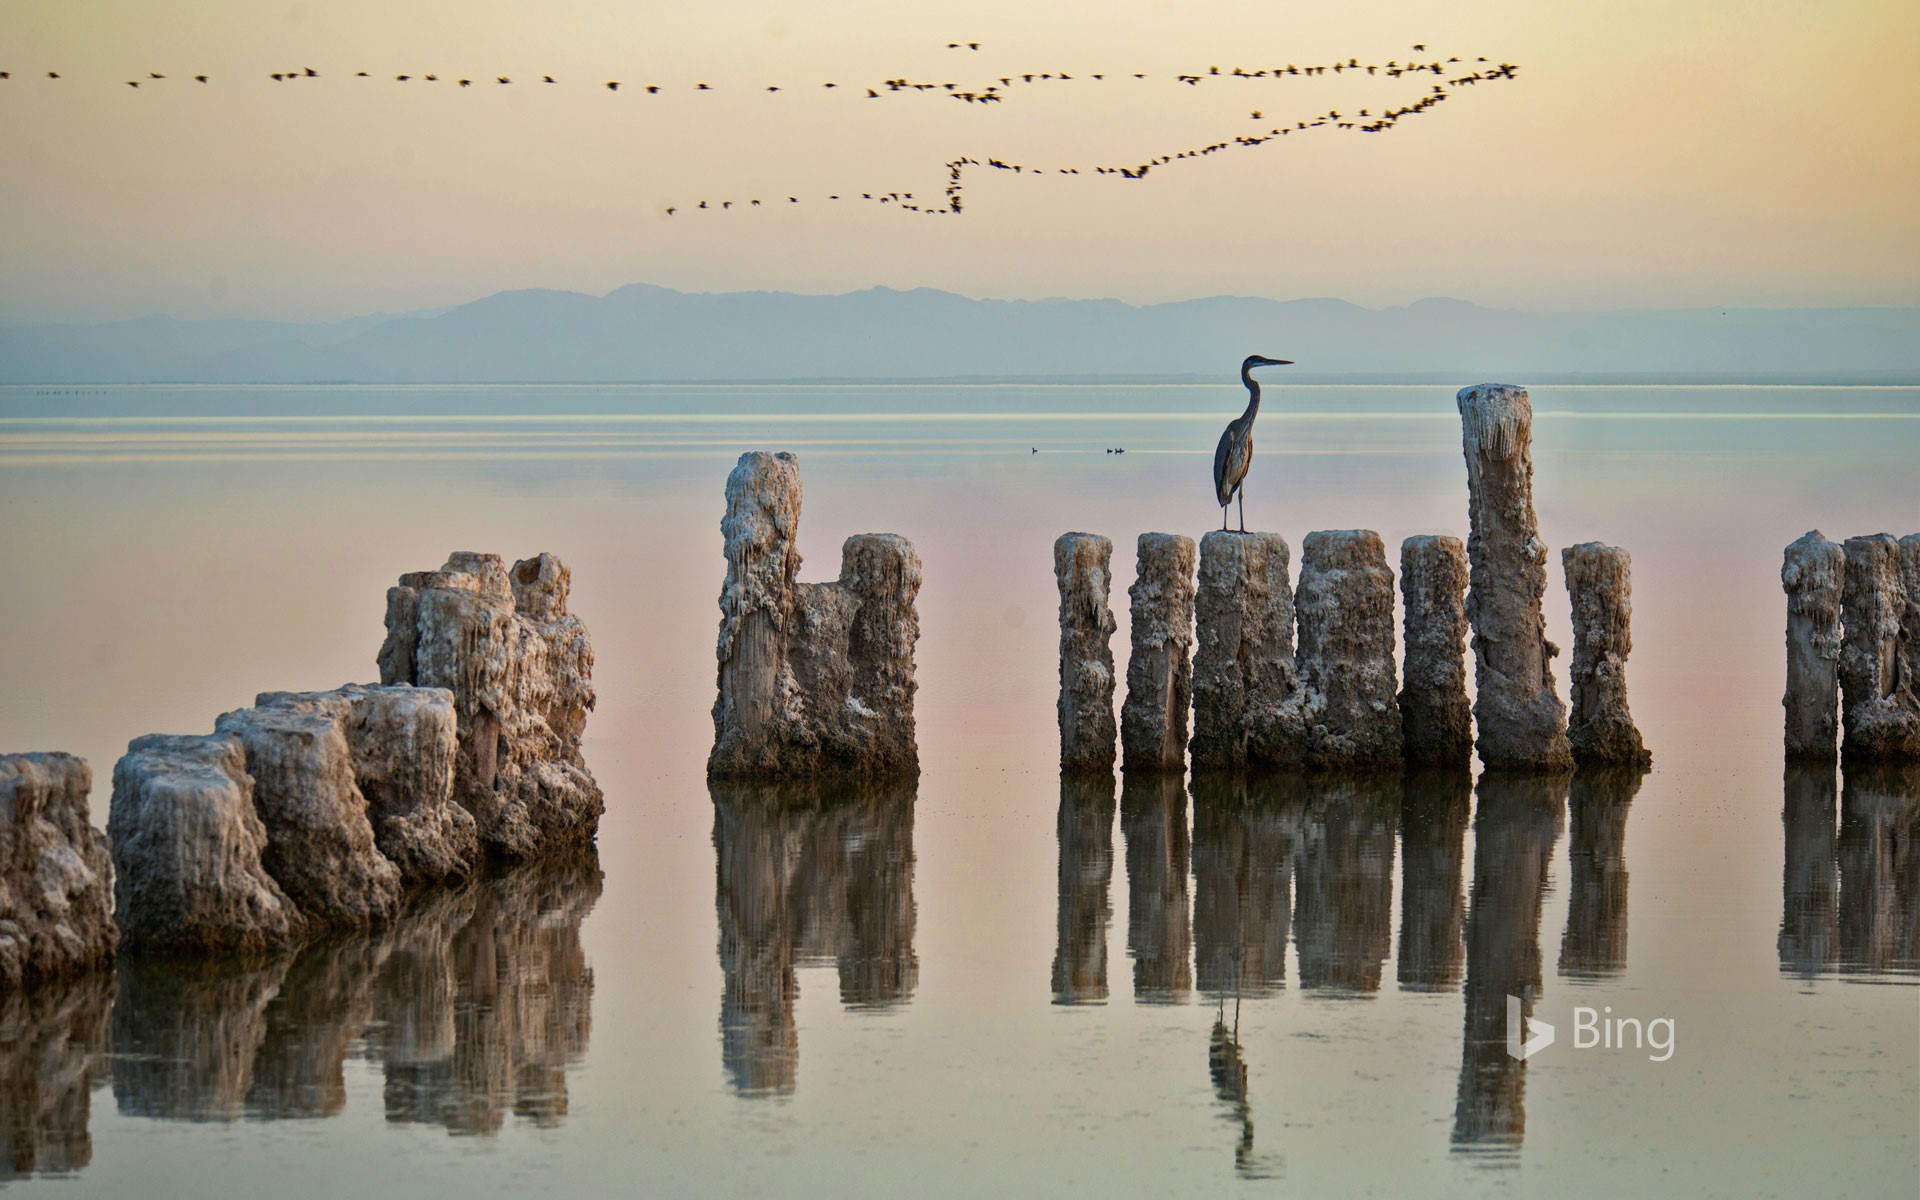 A heron perches on a piling at the Salton Sea in California, USA